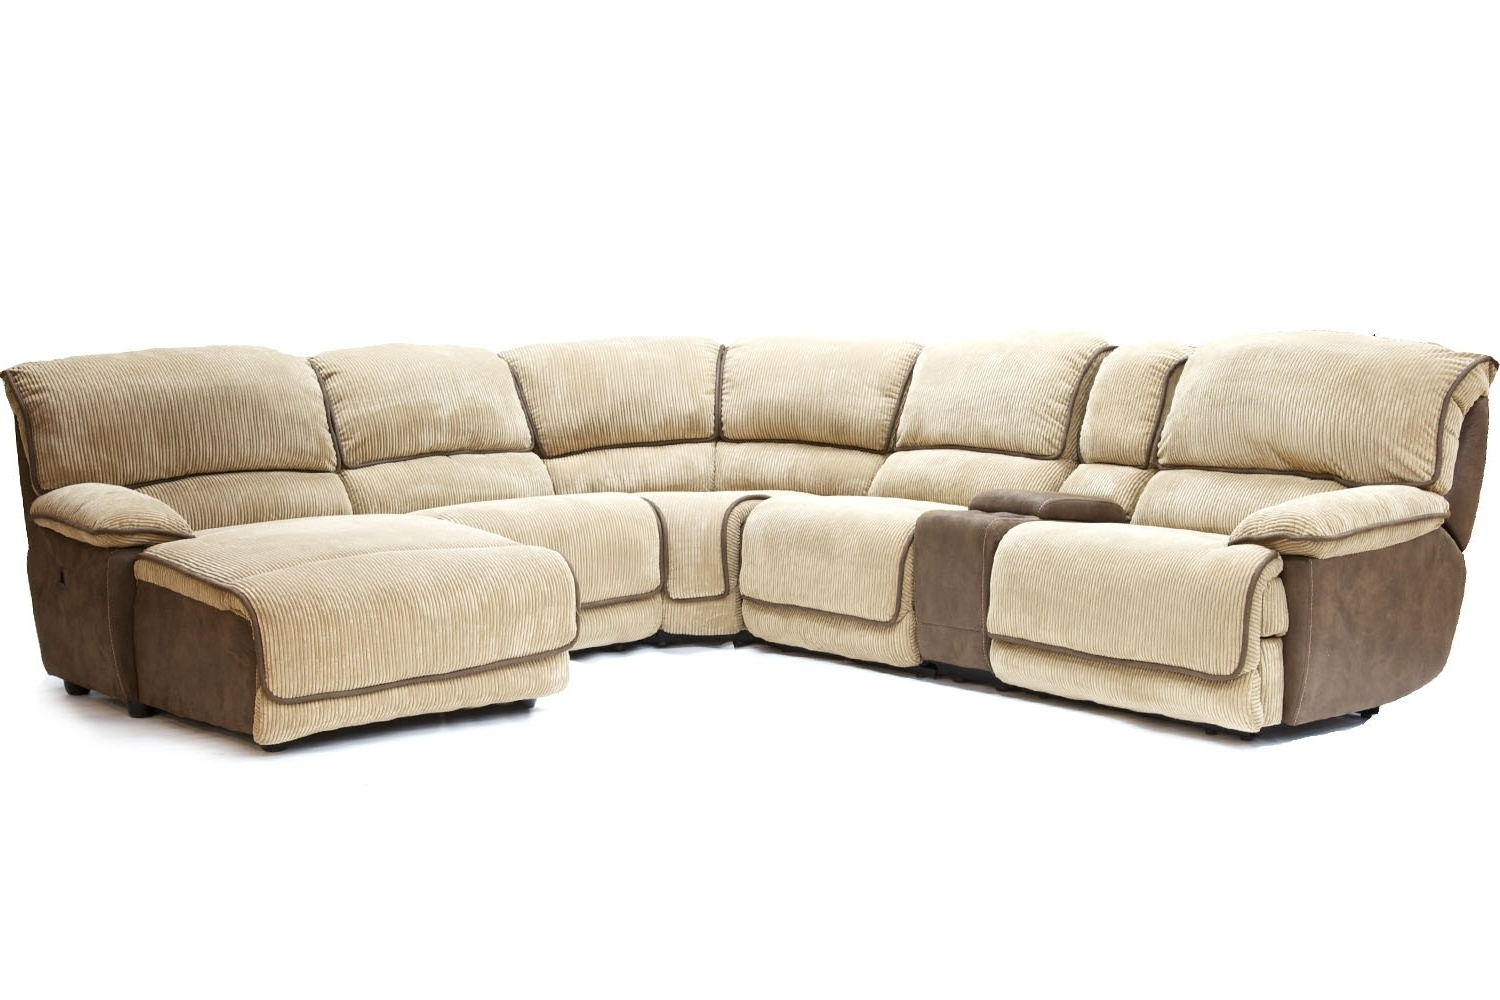 Gallery Austin Sectional Sofa – Mediasupload Within Well Liked Austin Sectional Sofas (Gallery 2 of 20)